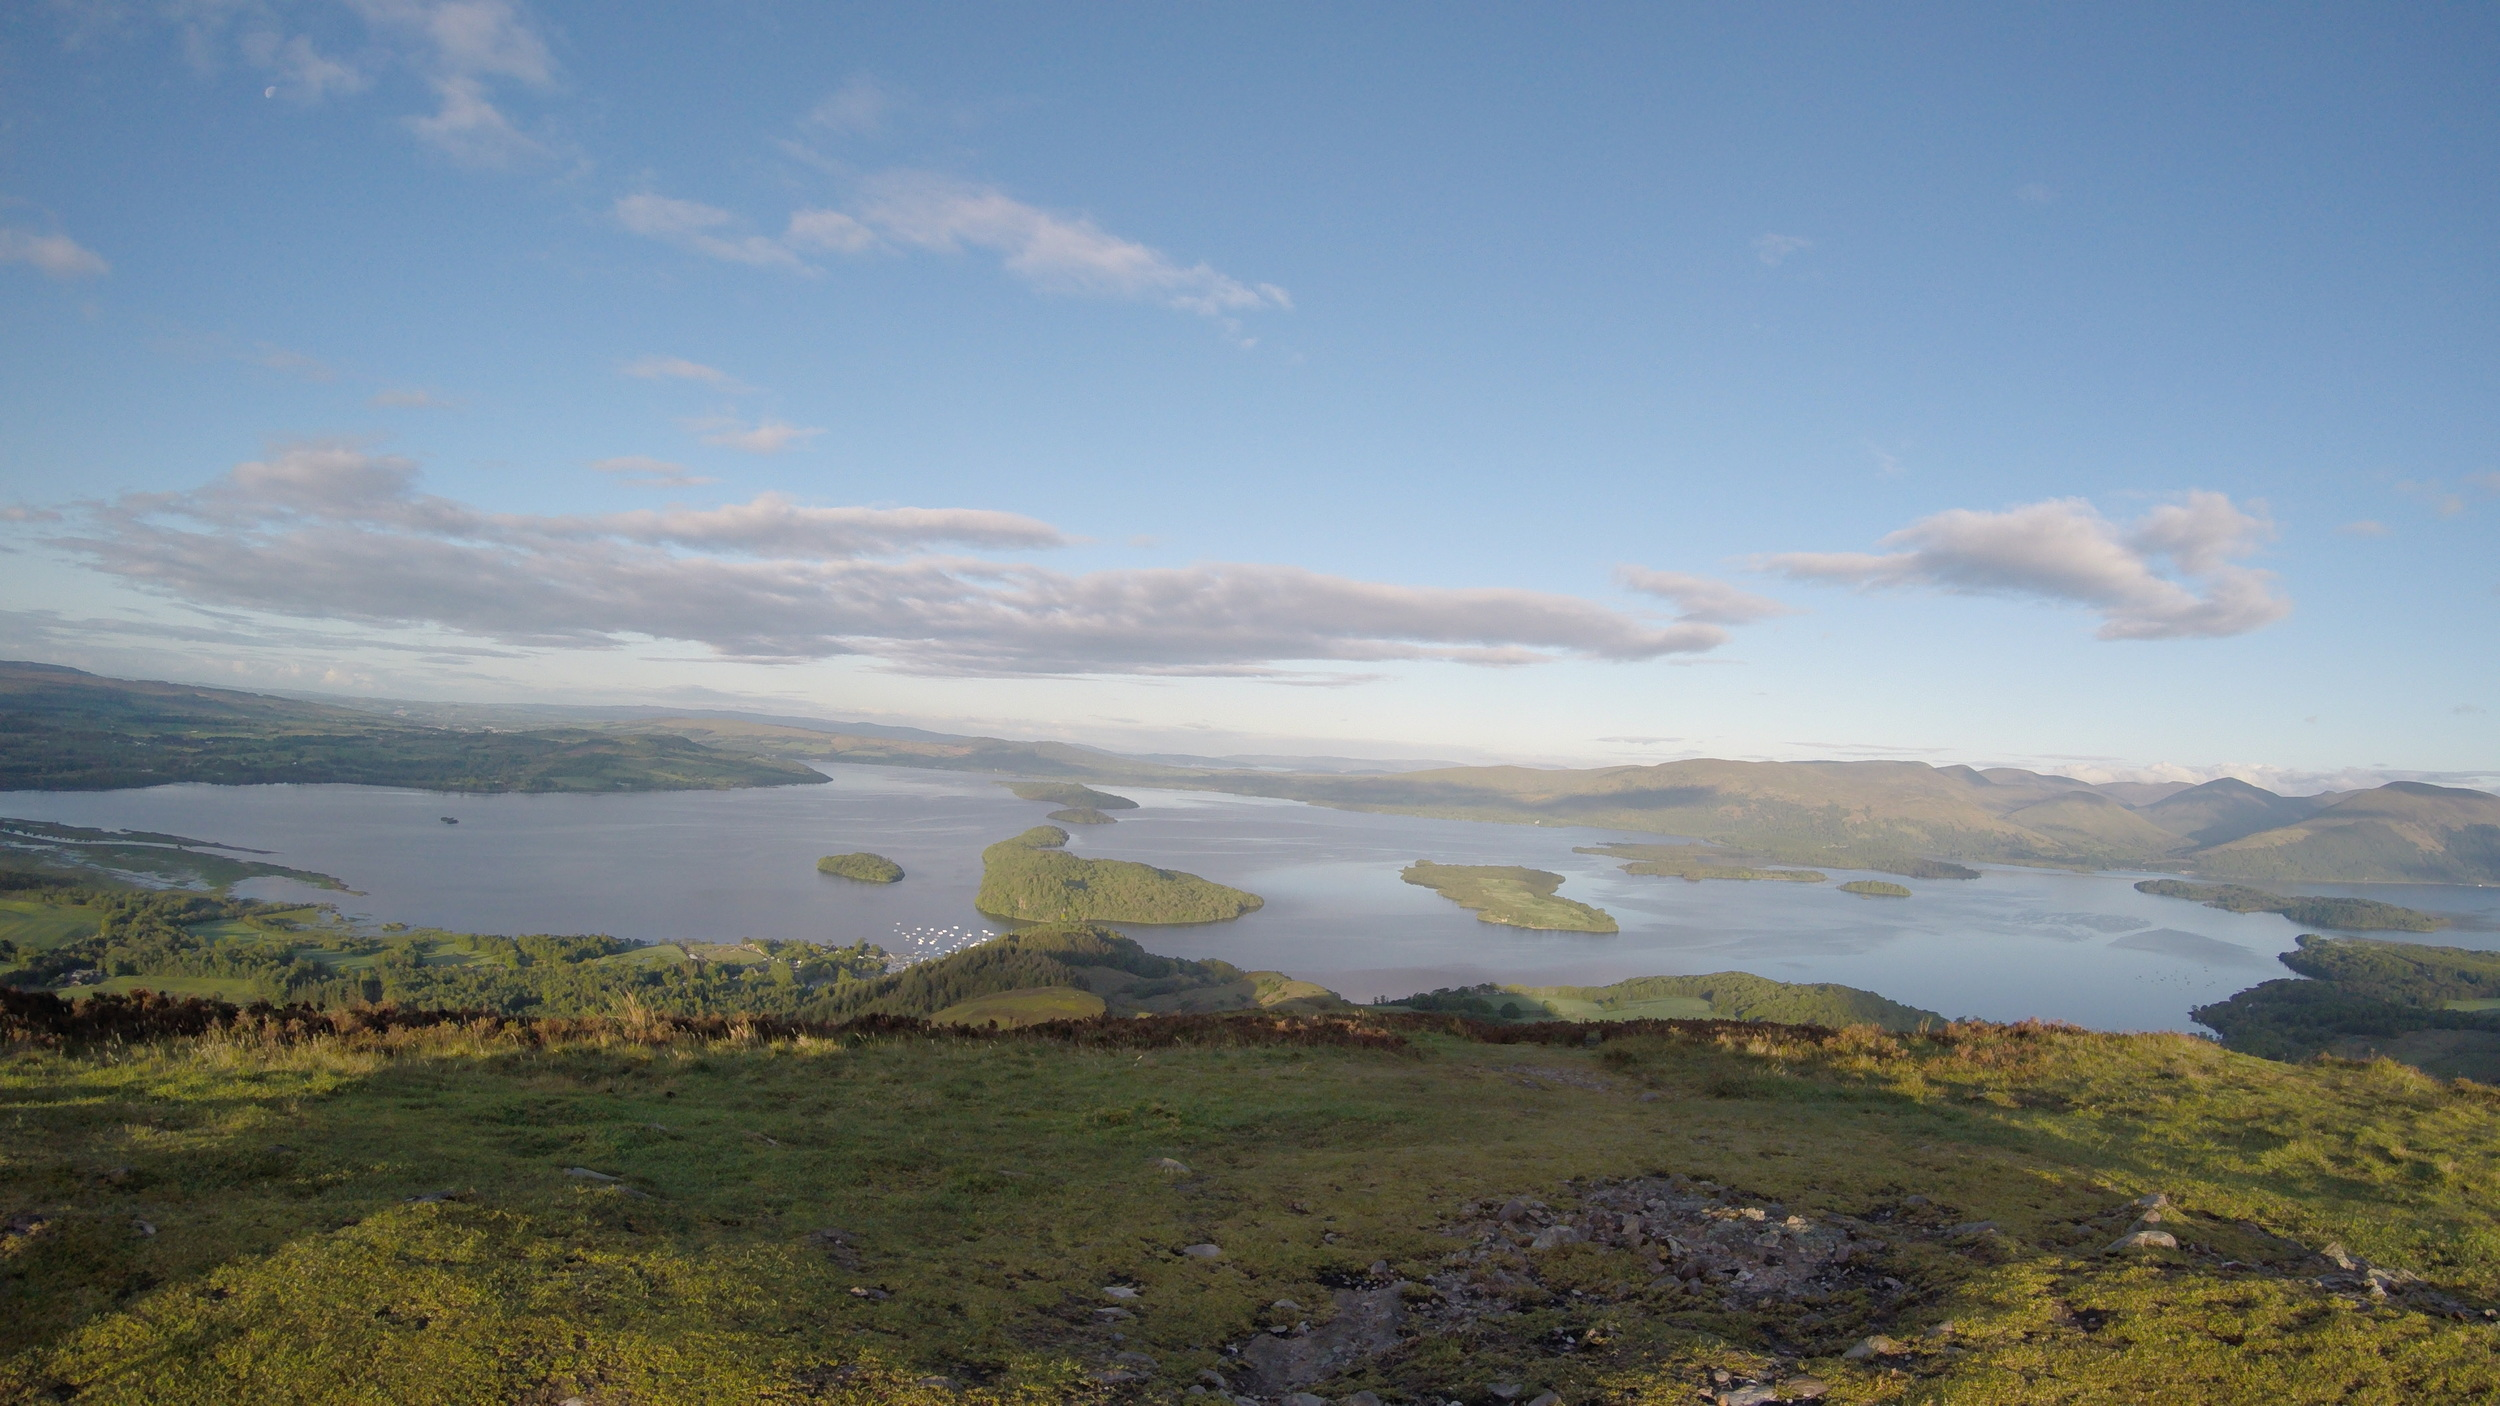 view-of-loch-lomond-islands-from-the-top-of-conic-hill